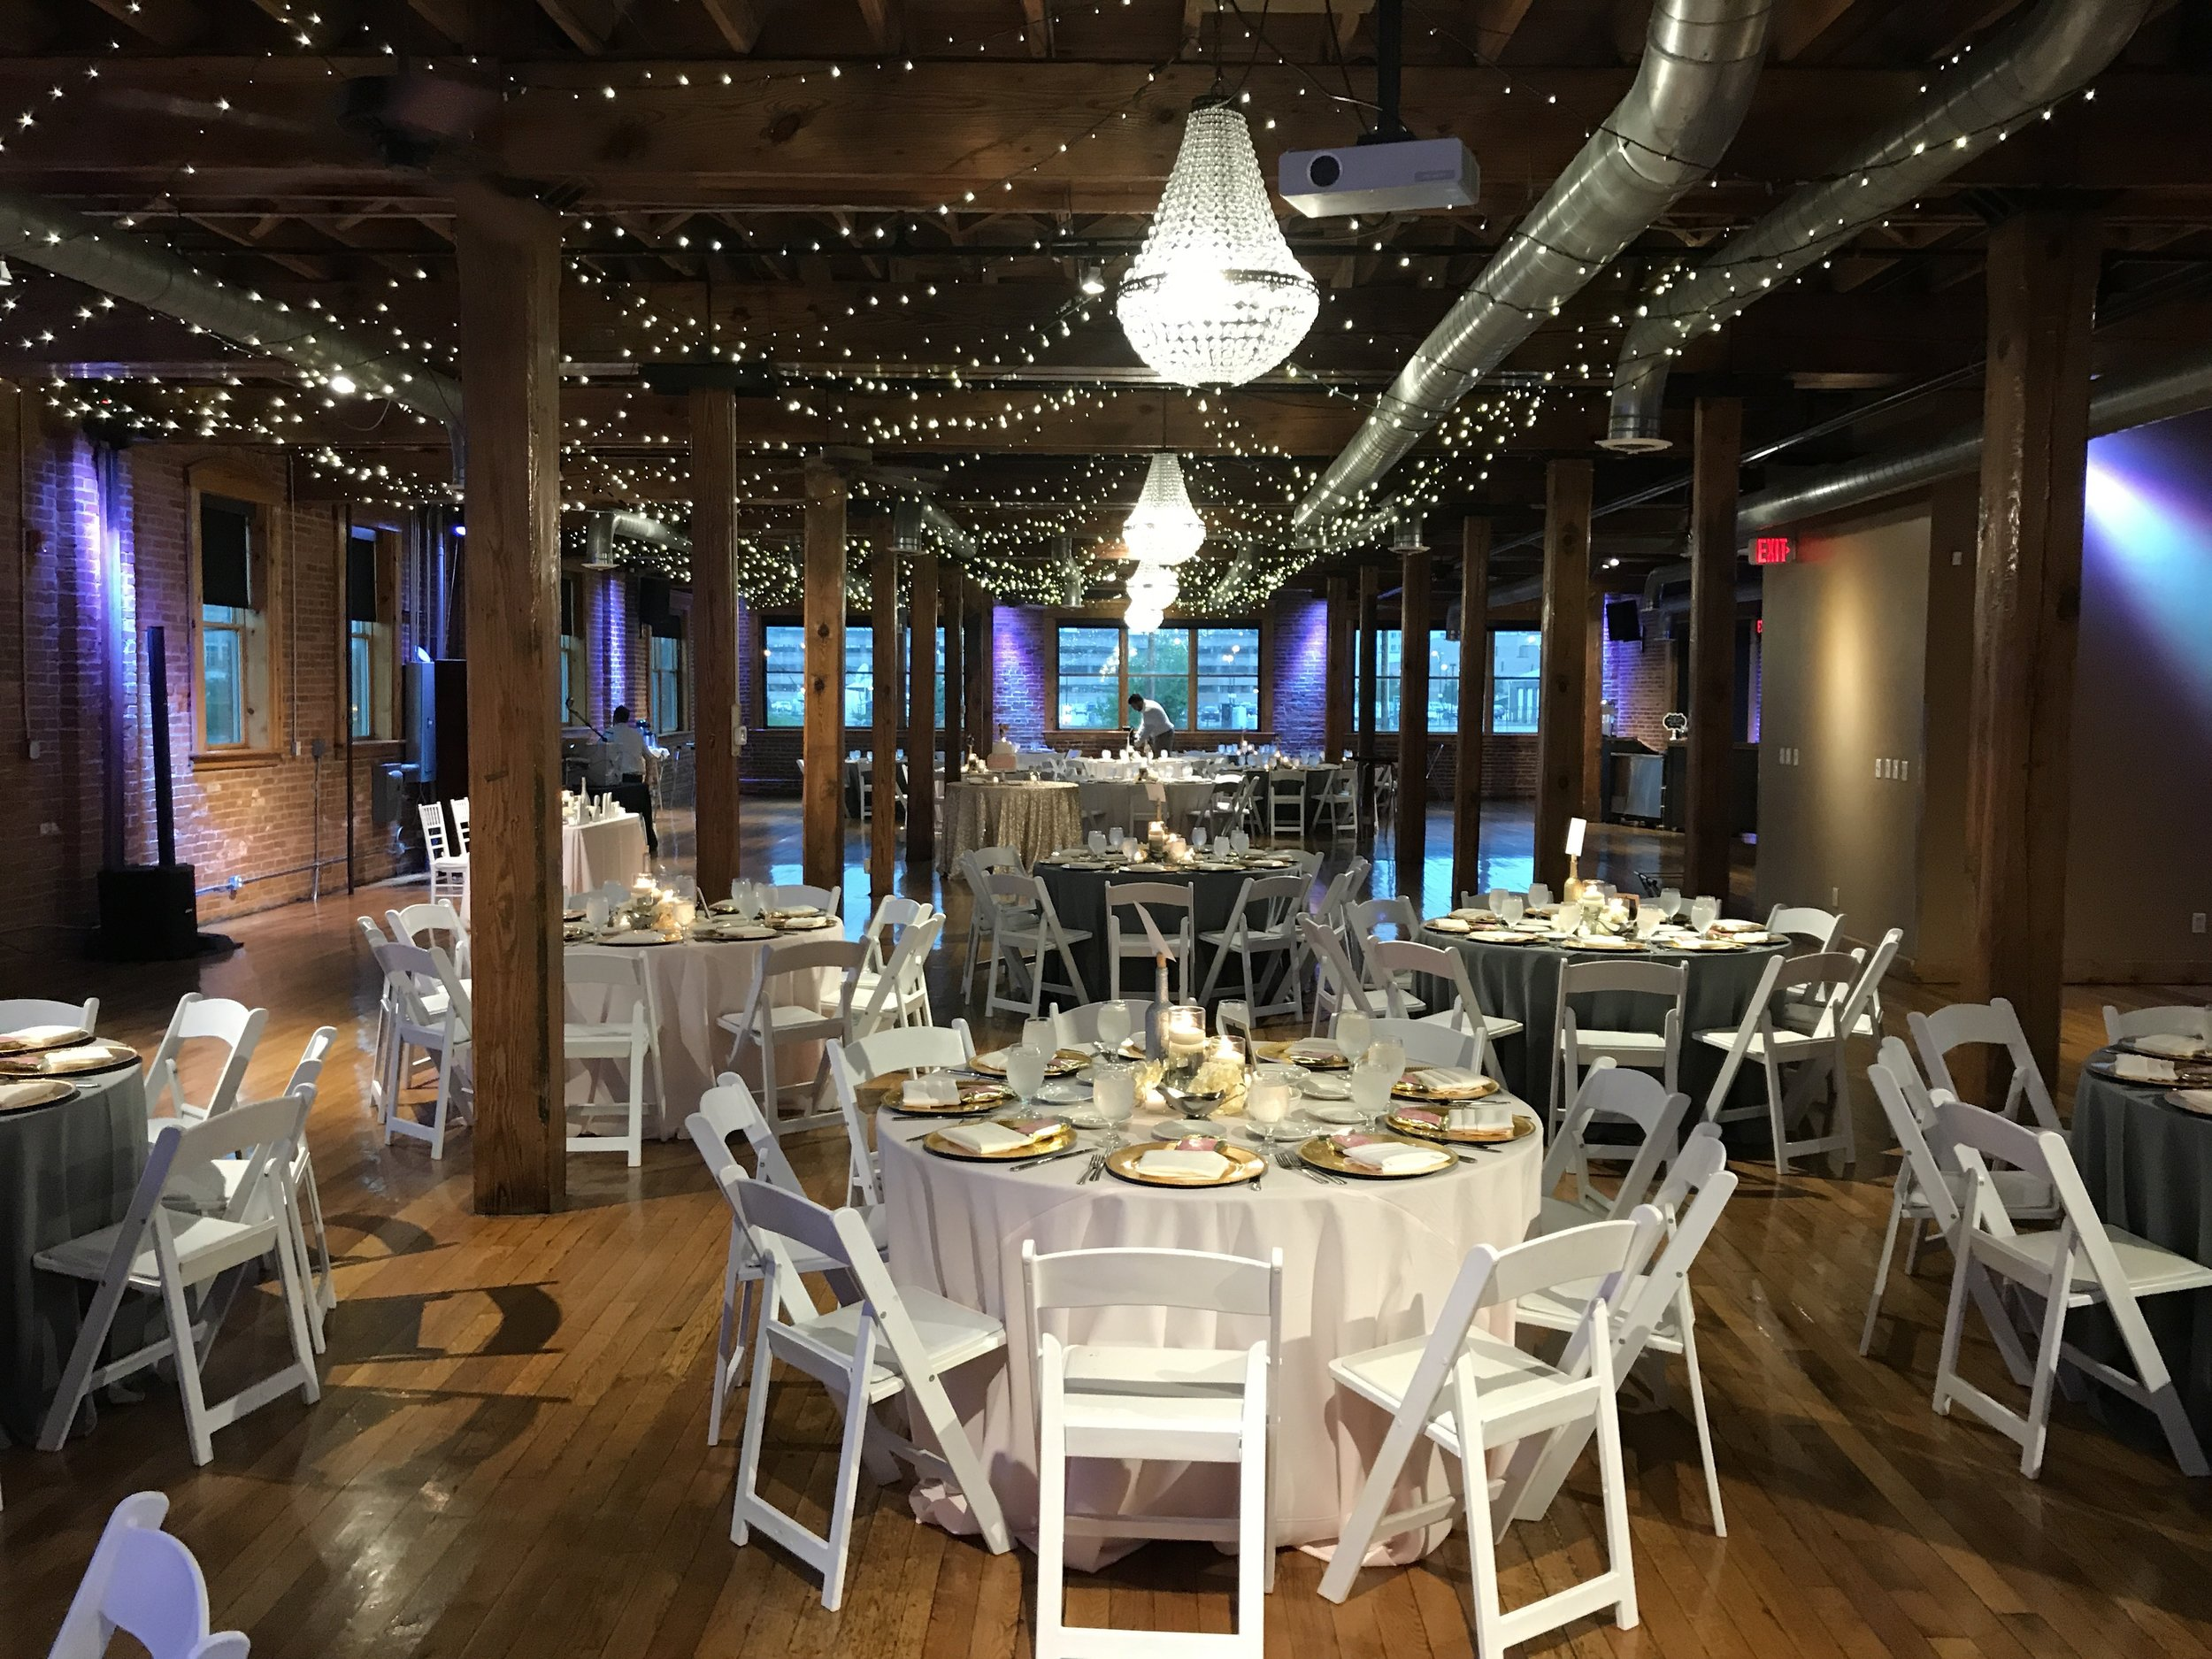 Audra & Zach got married on the 3rd floor, then guests enjoyed dinner & dancing on the 2nd.